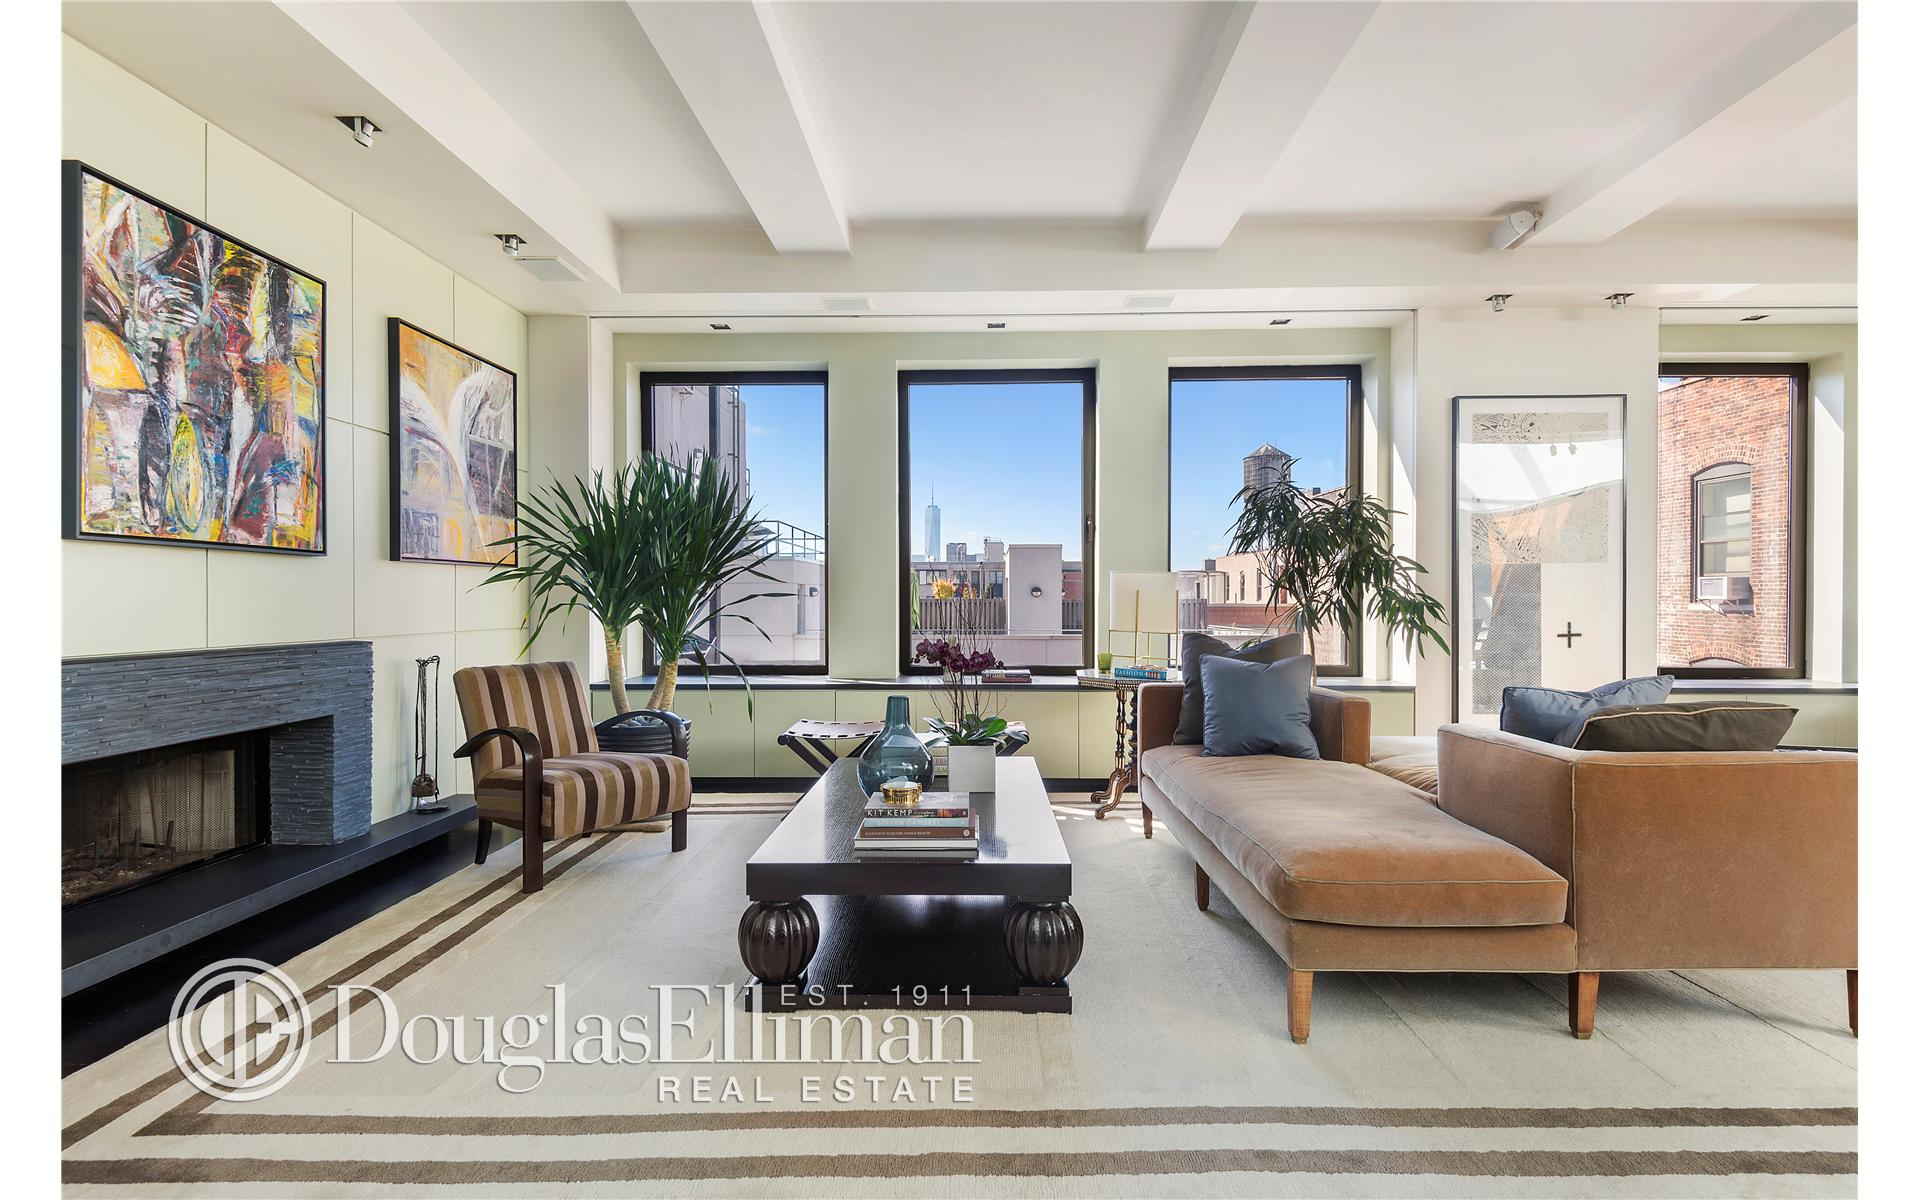 Condominium for Sale at CHELSEA FLATS, Chelsea Flats, 126 West 22nd Street New York, New York 10011 United States